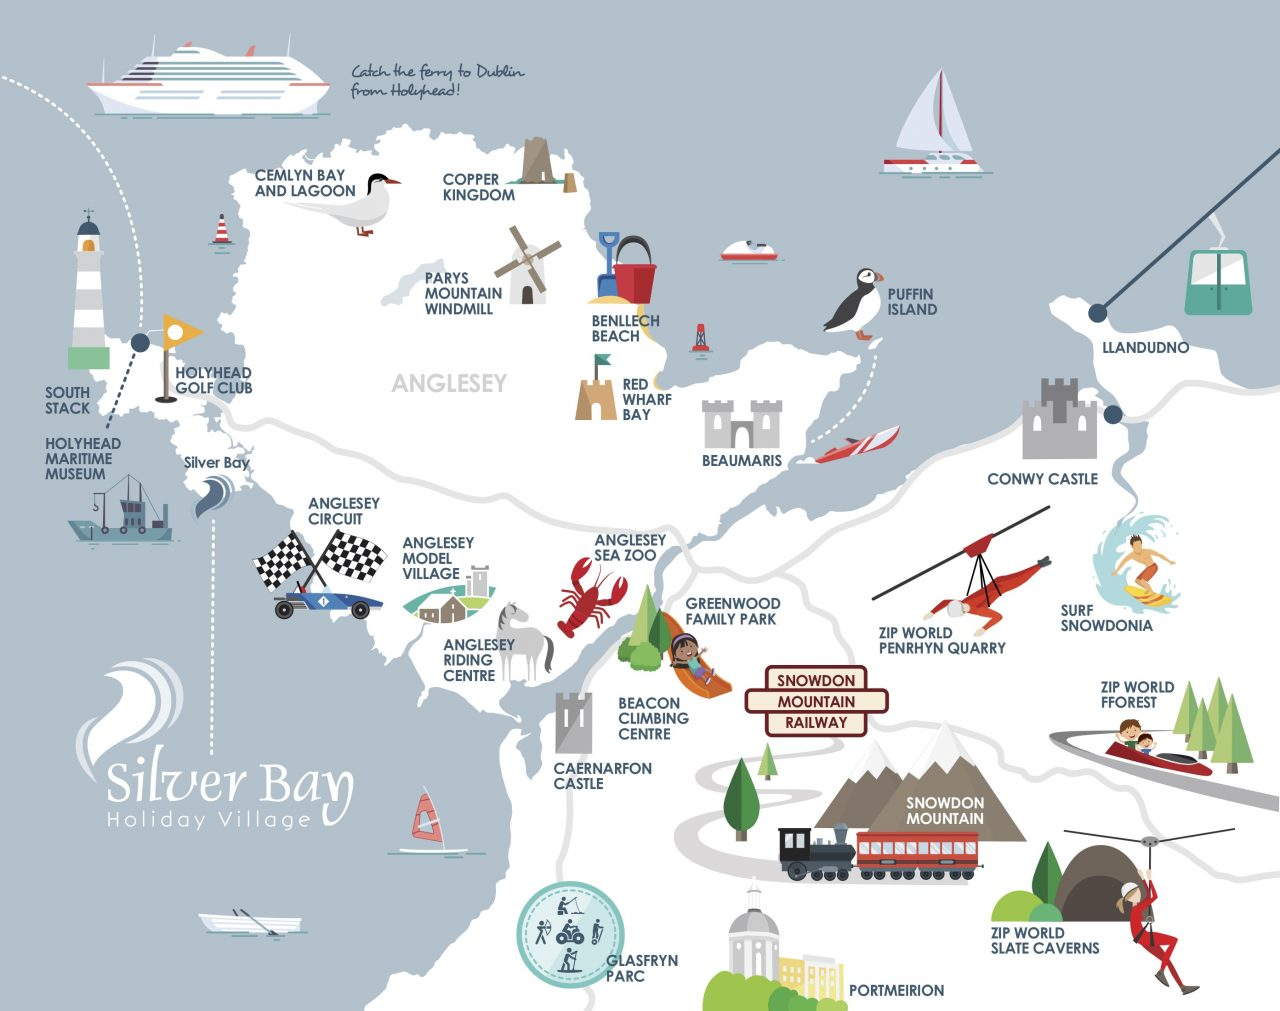 Silver-Bay-Attractions-Map-1280x1011.jpg